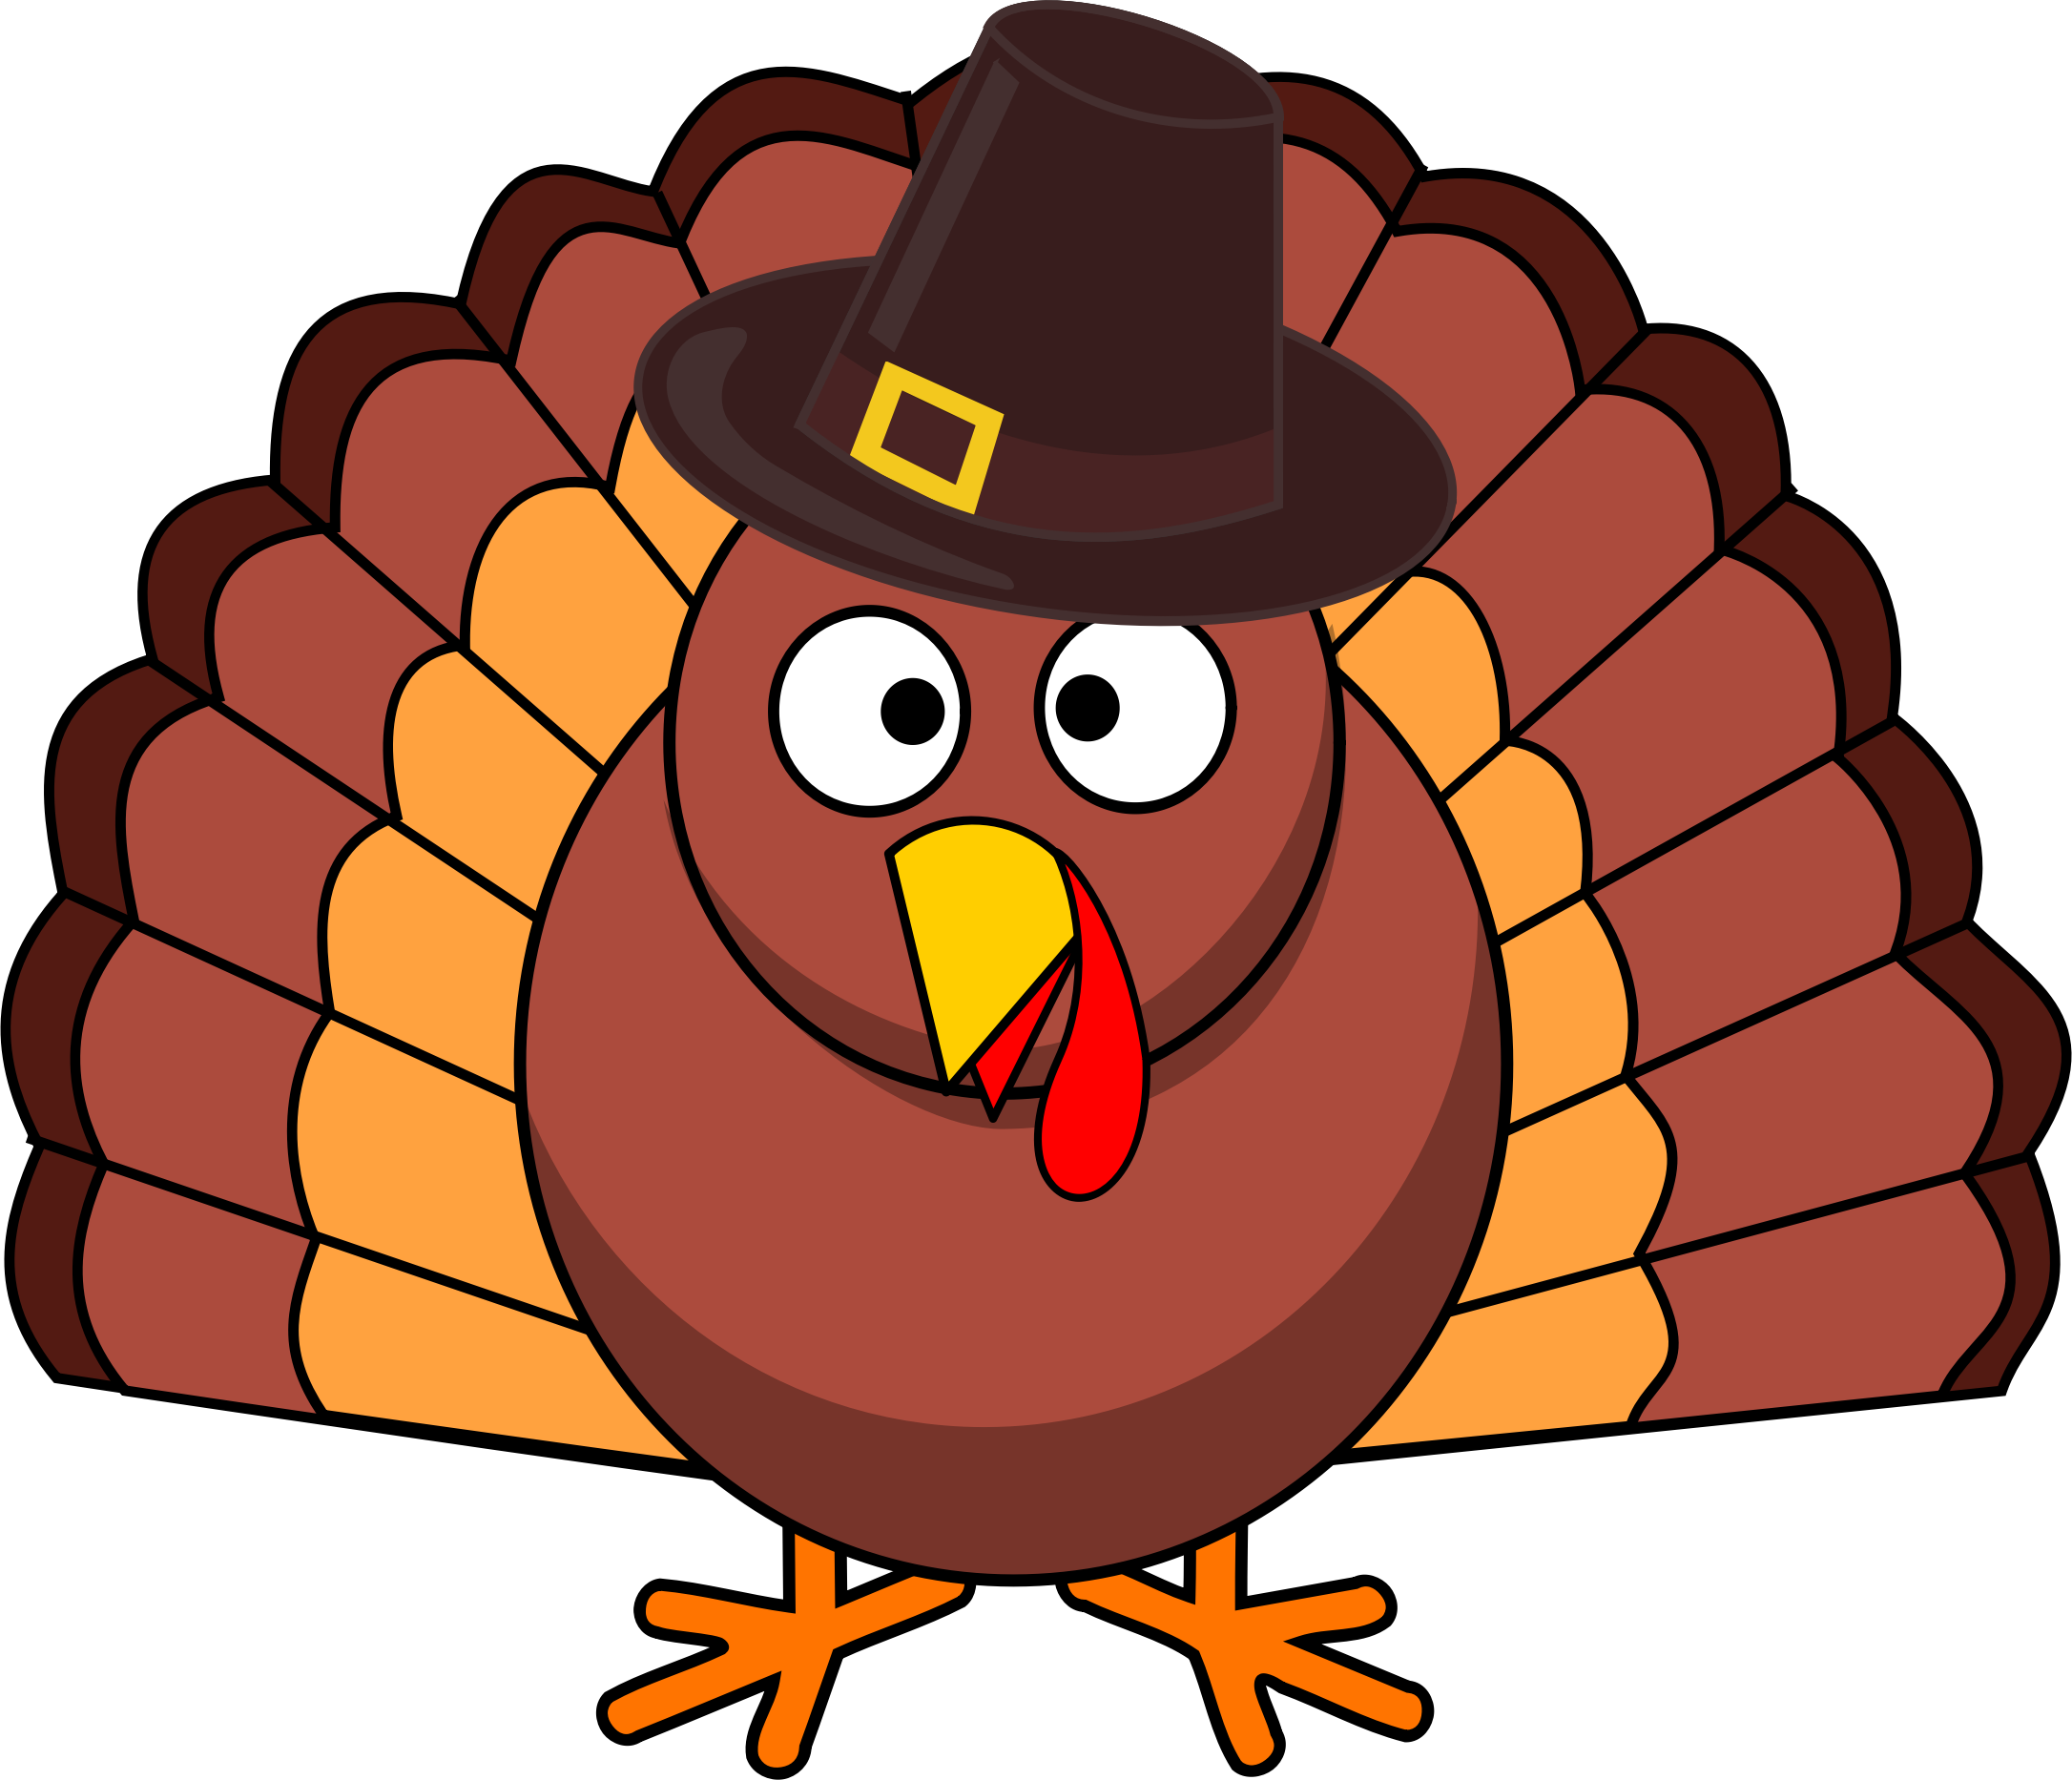 Turkey Clipart Png - Turkey clipart transparent clip art library png - Cliparting.com